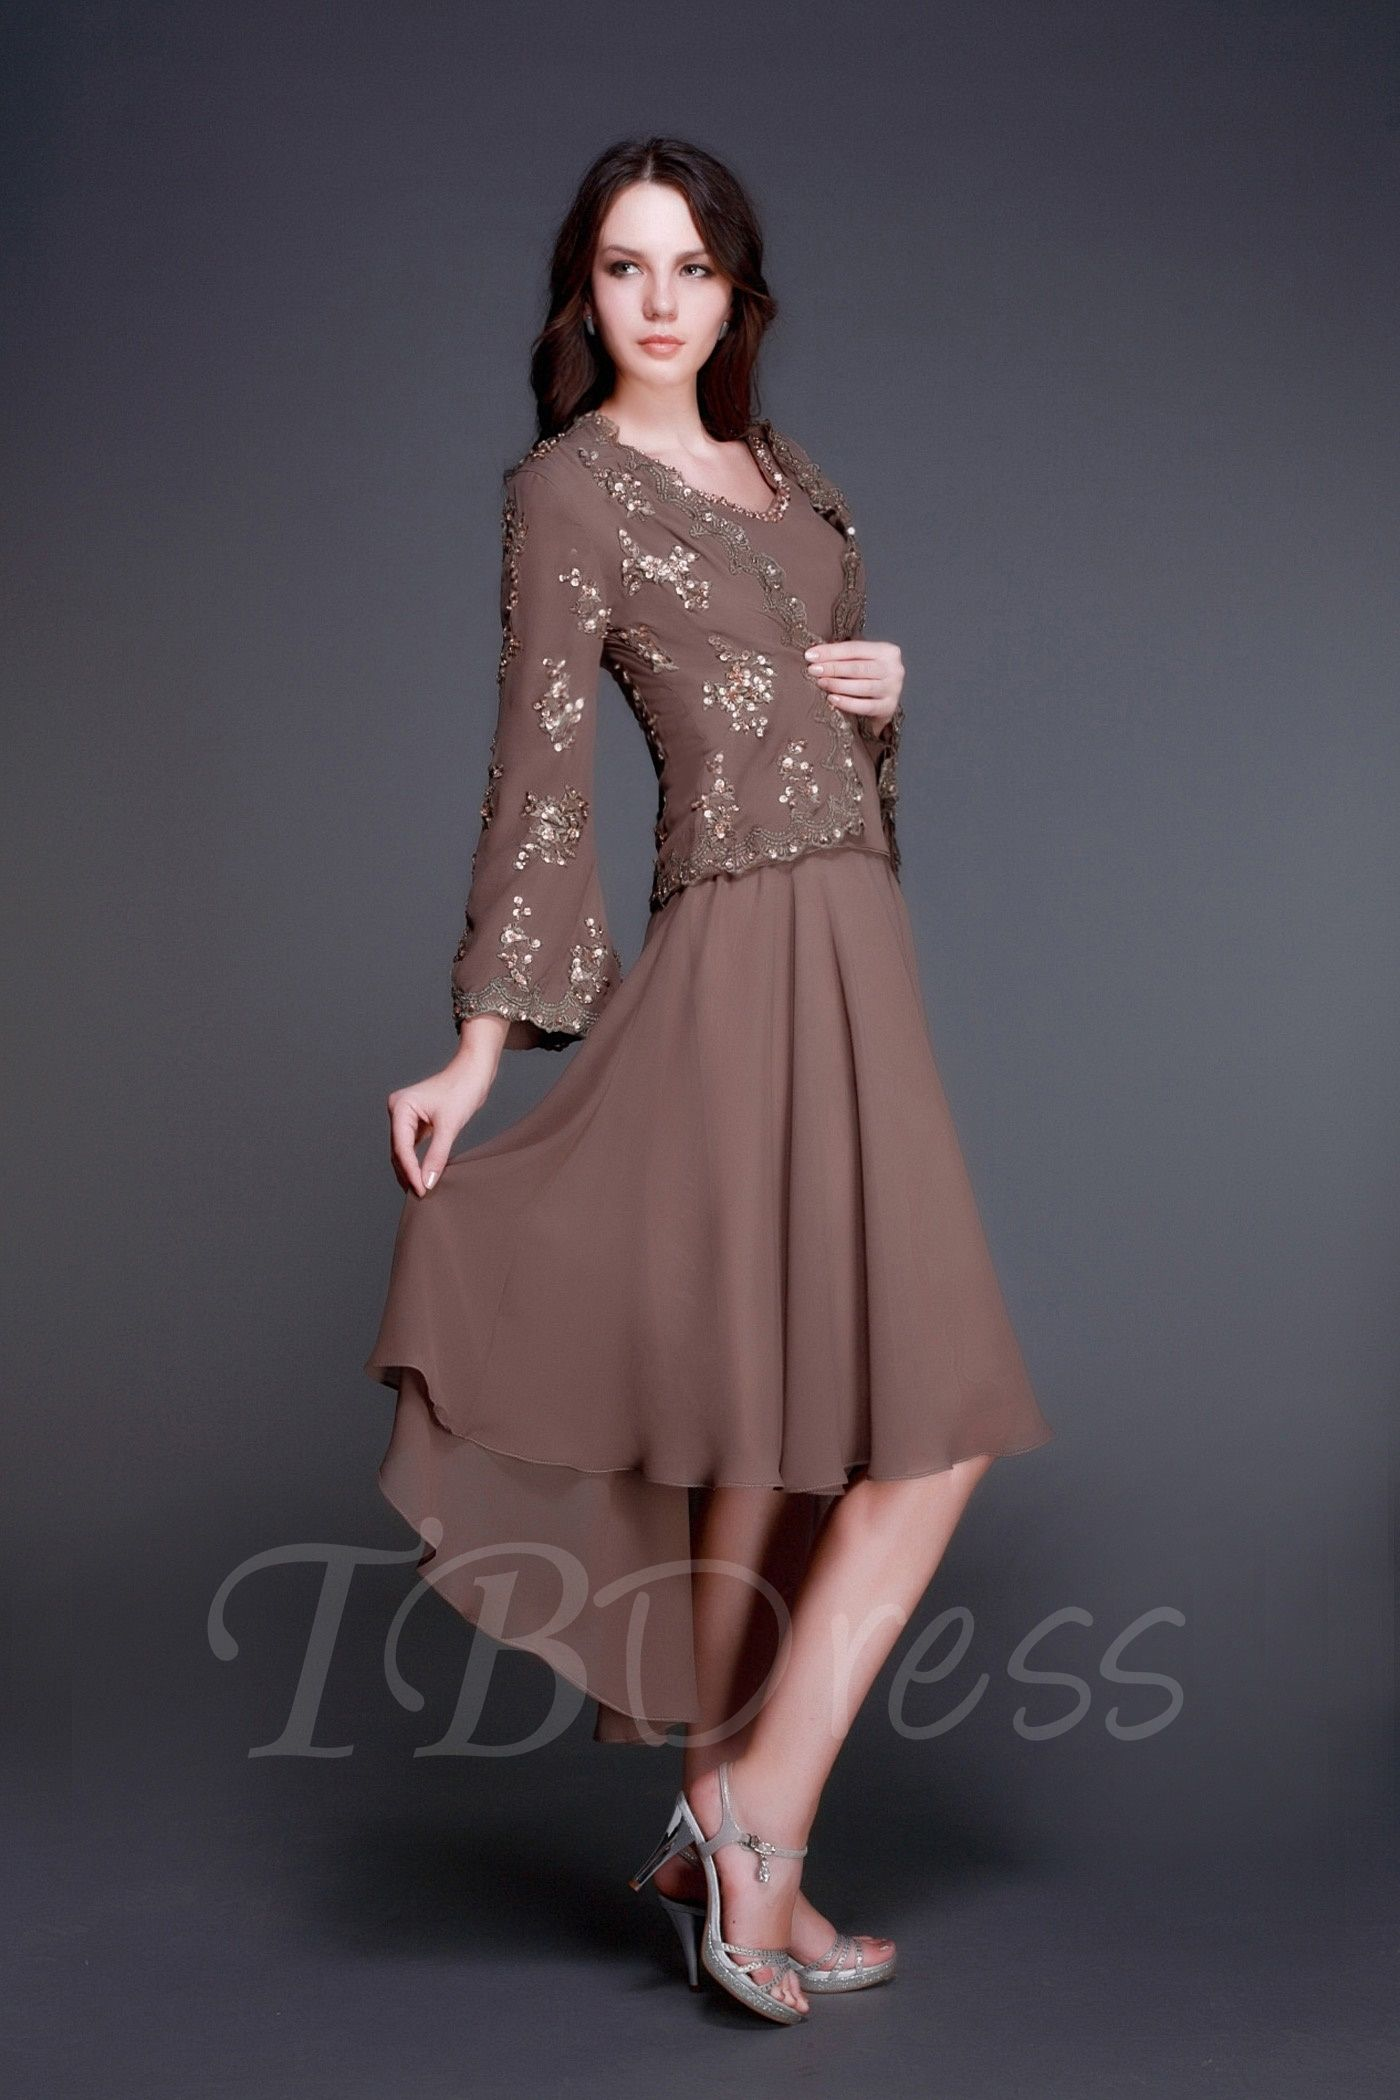 f7c32ff8c8b Tbdress.com offers high quality A-Line V-neck Asymmetry Luba s Mother of  The Bride Dress With Jacket Shawl Latest Mother Dresses unit price of    132.99.